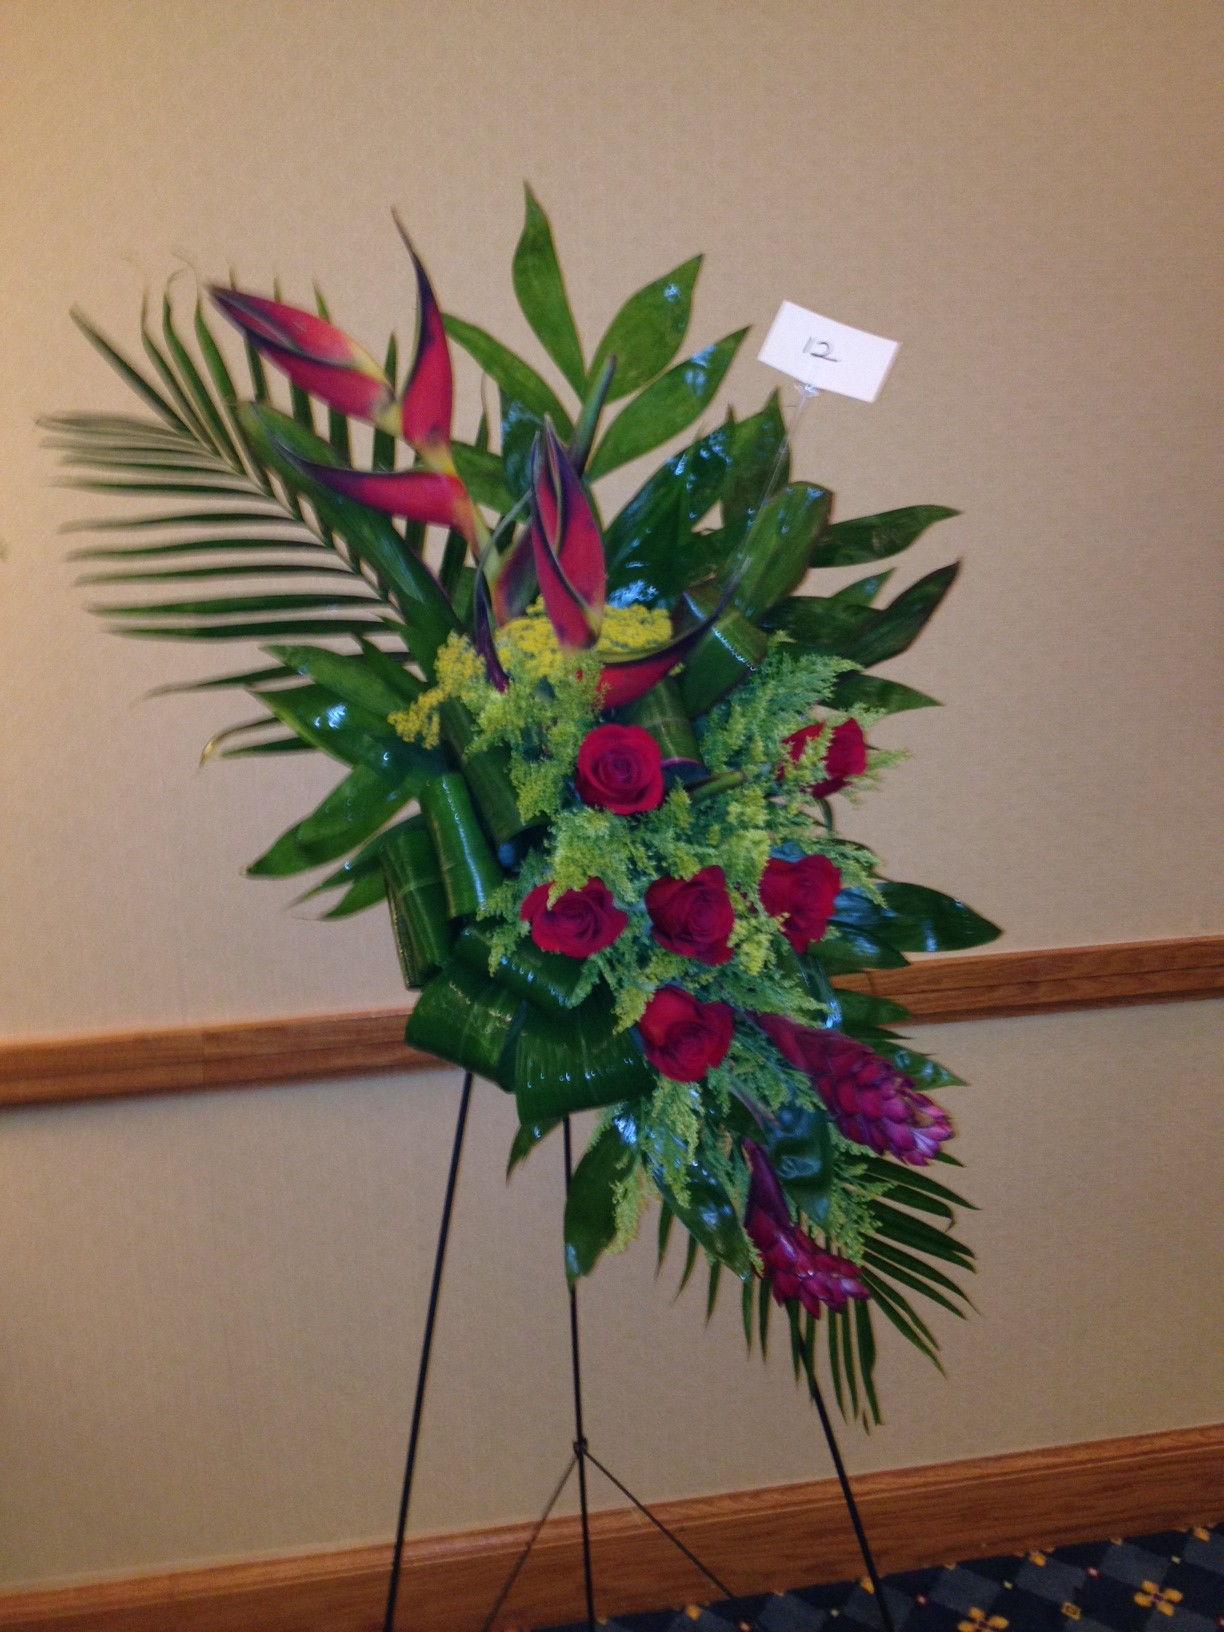 South carolina florist association convention 2012 tropical funeral flower arrangement izmirmasajfo Image collections